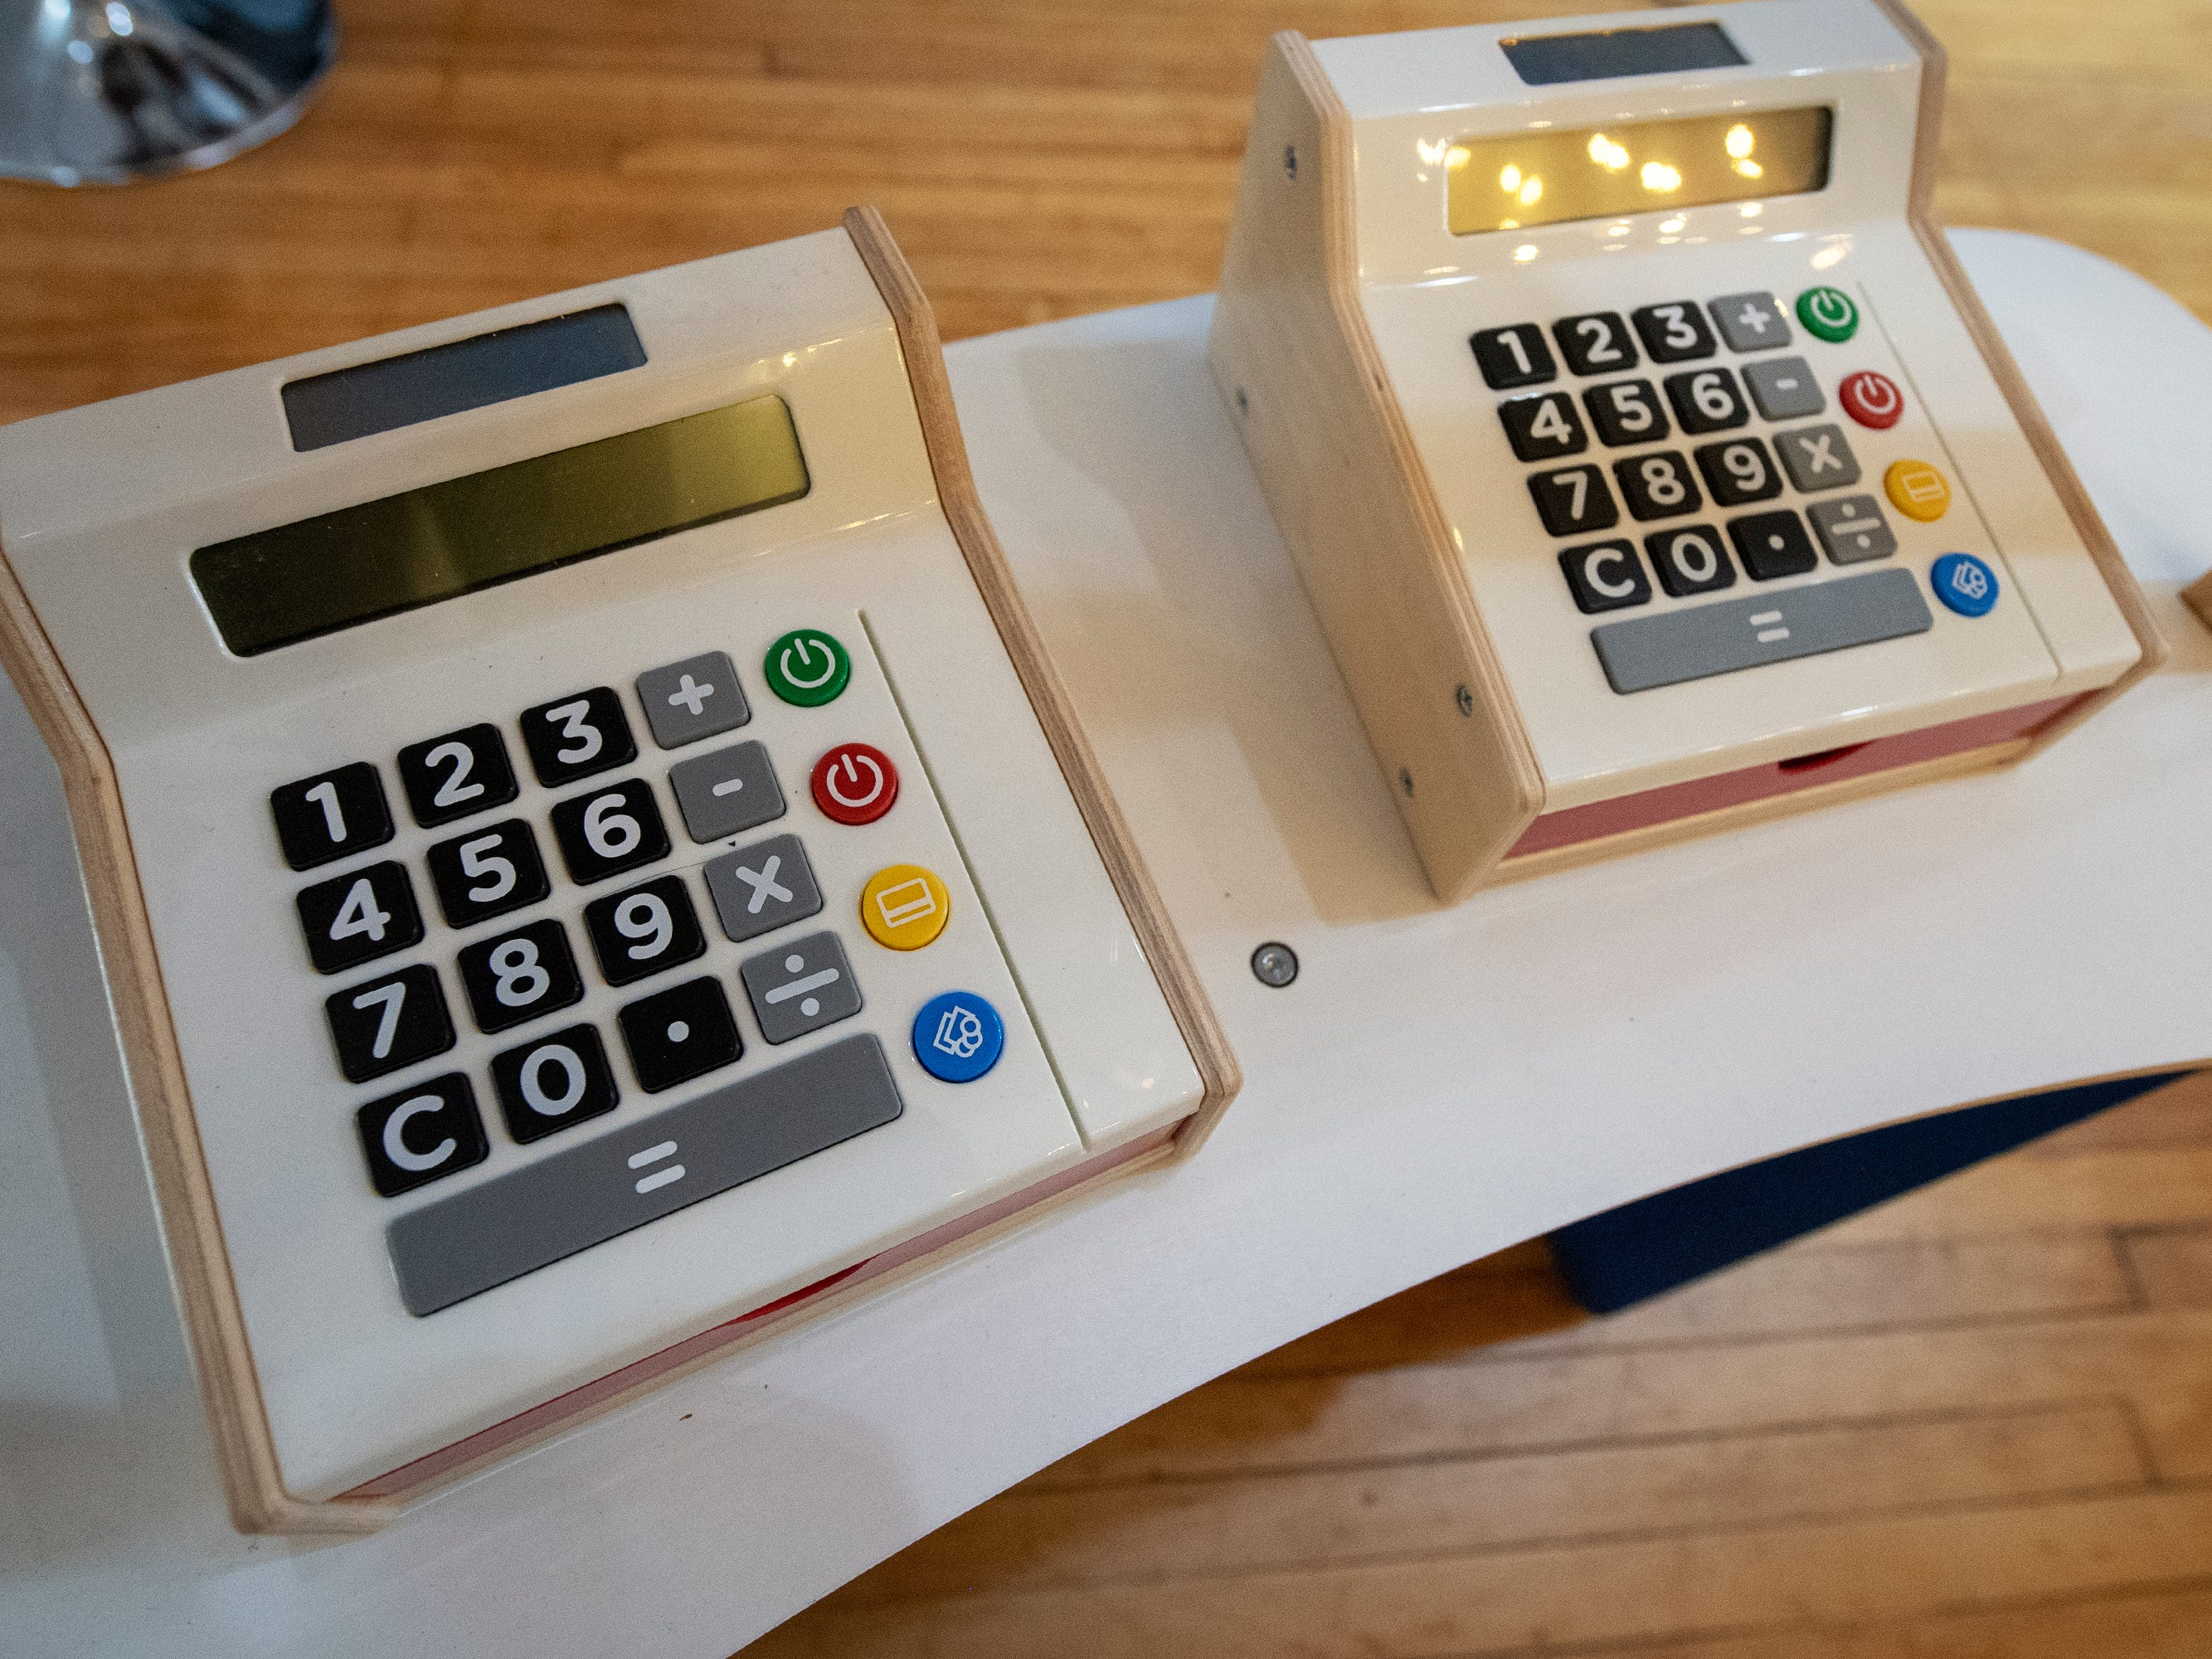 Play cash registers at The Diner will help children count play money at a restaurant inside The Curious Little Playhouse.